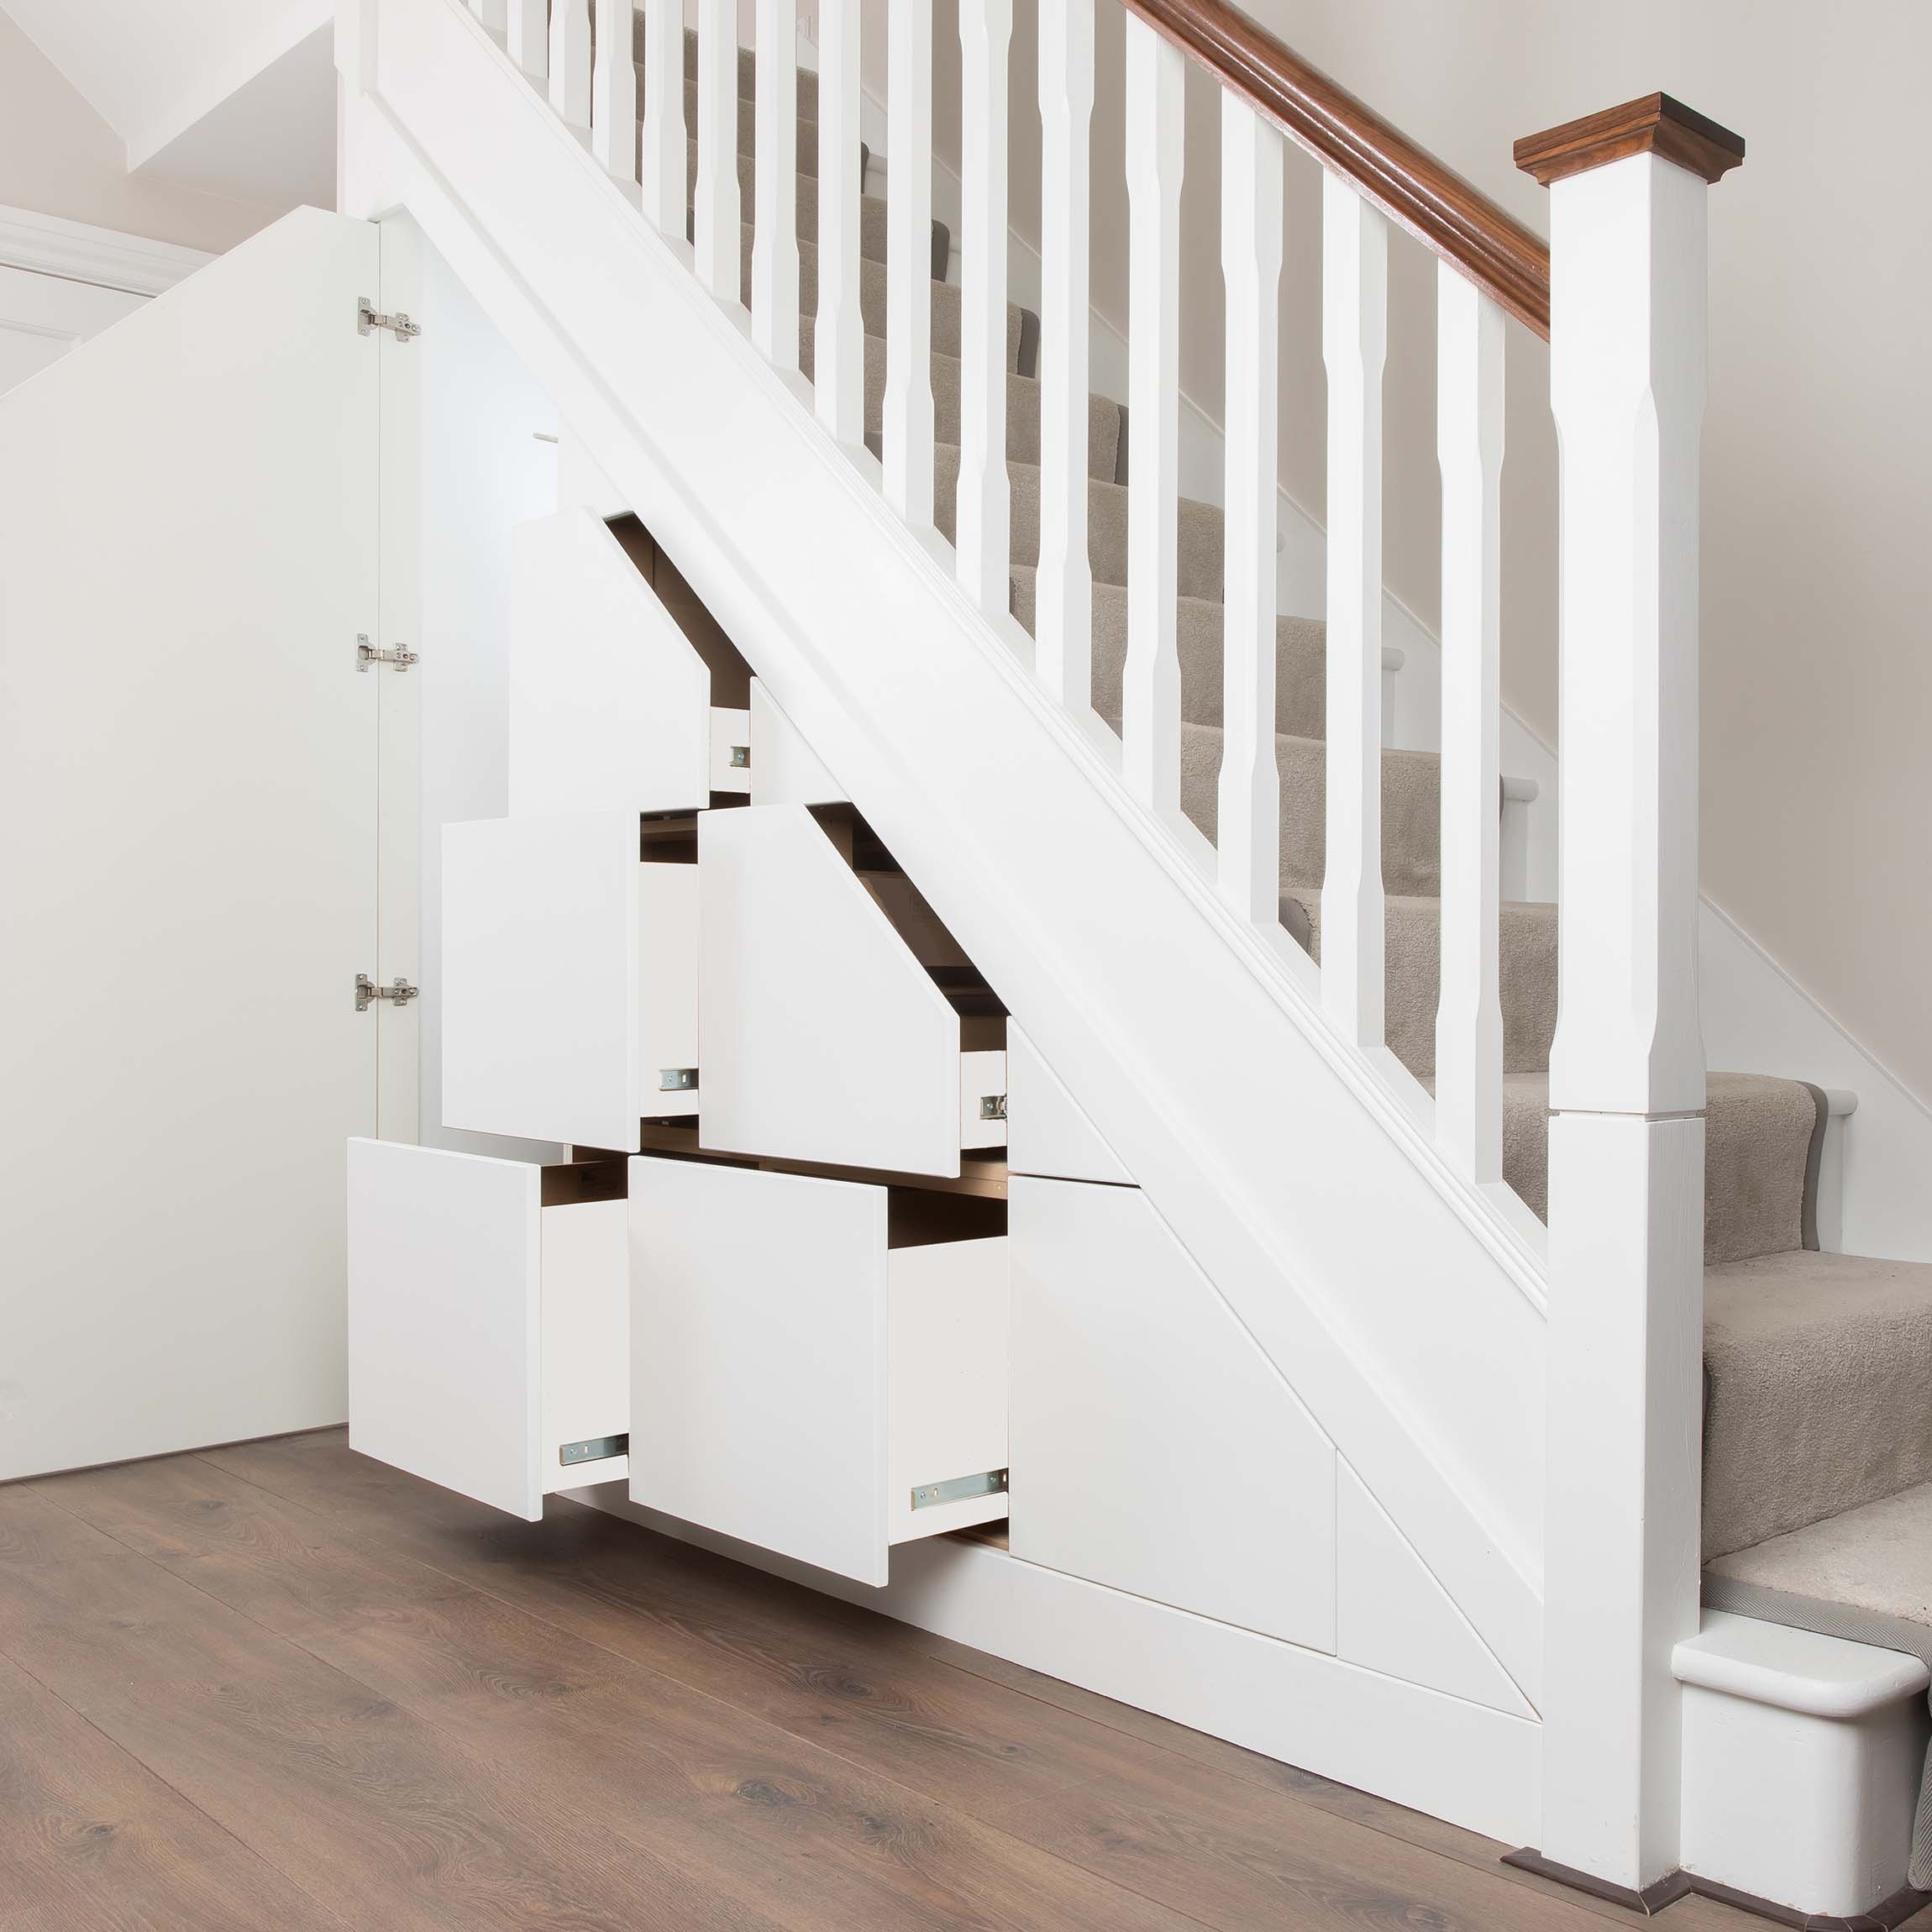 12 Storage Ideas For Under Stairs: Staircase Storage